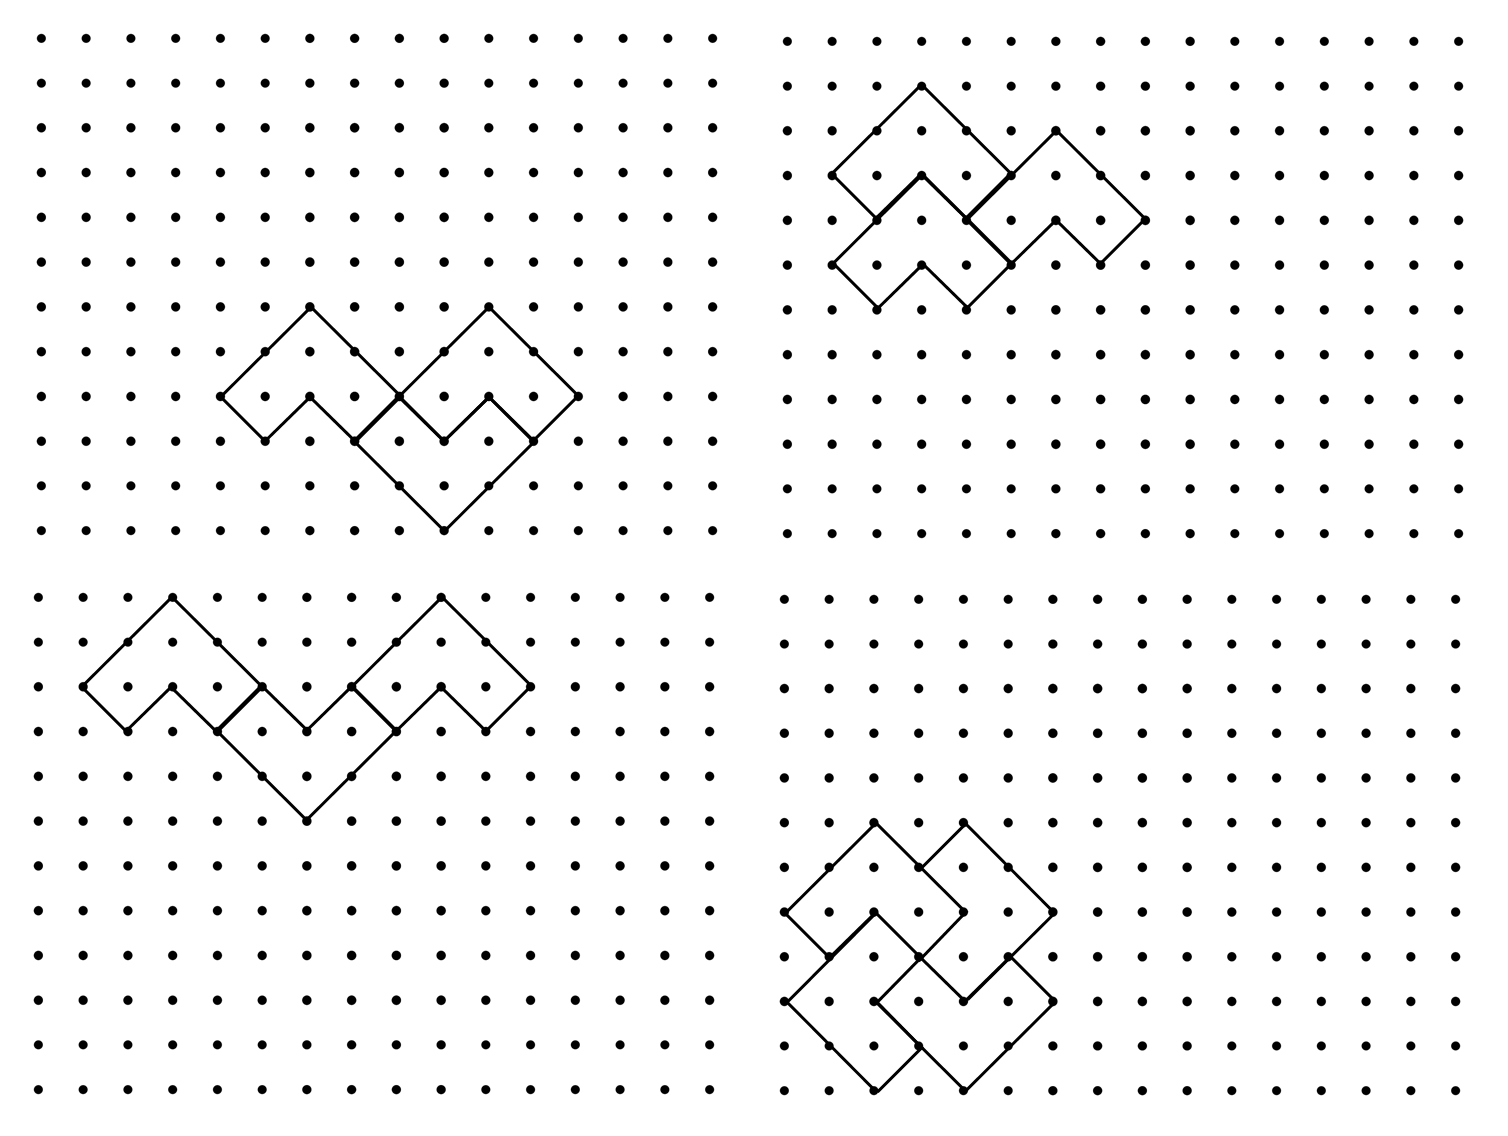 tessellations on graph paper